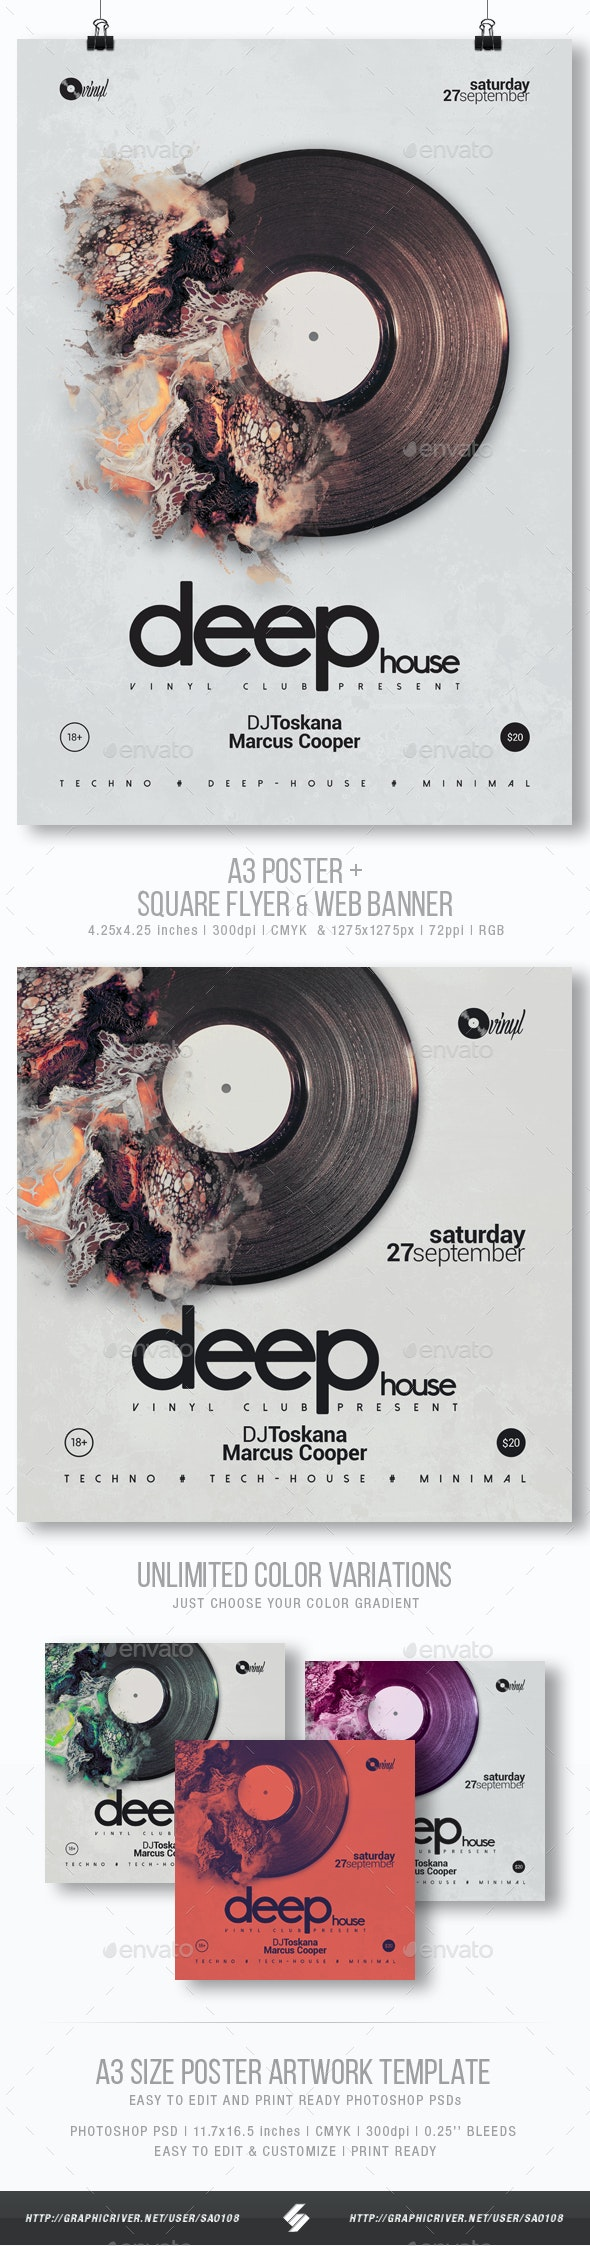 Deep Sound vol.2 - Party Flyer / Poster Template A3 - Clubs & Parties Events